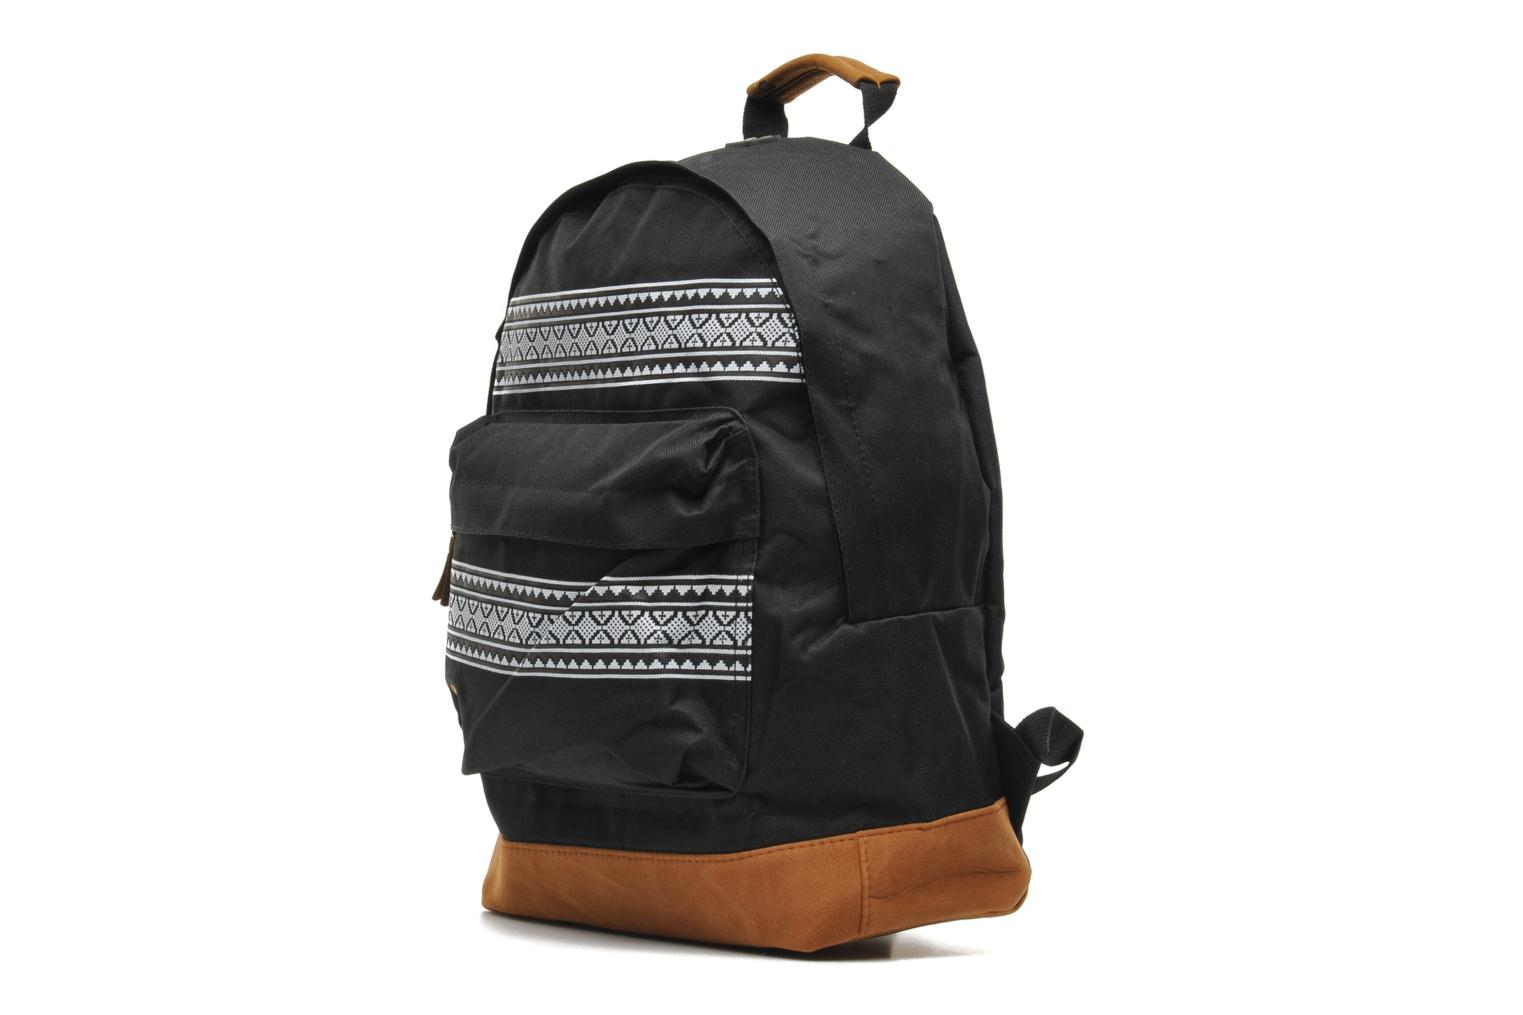 Nordic Backpack Black